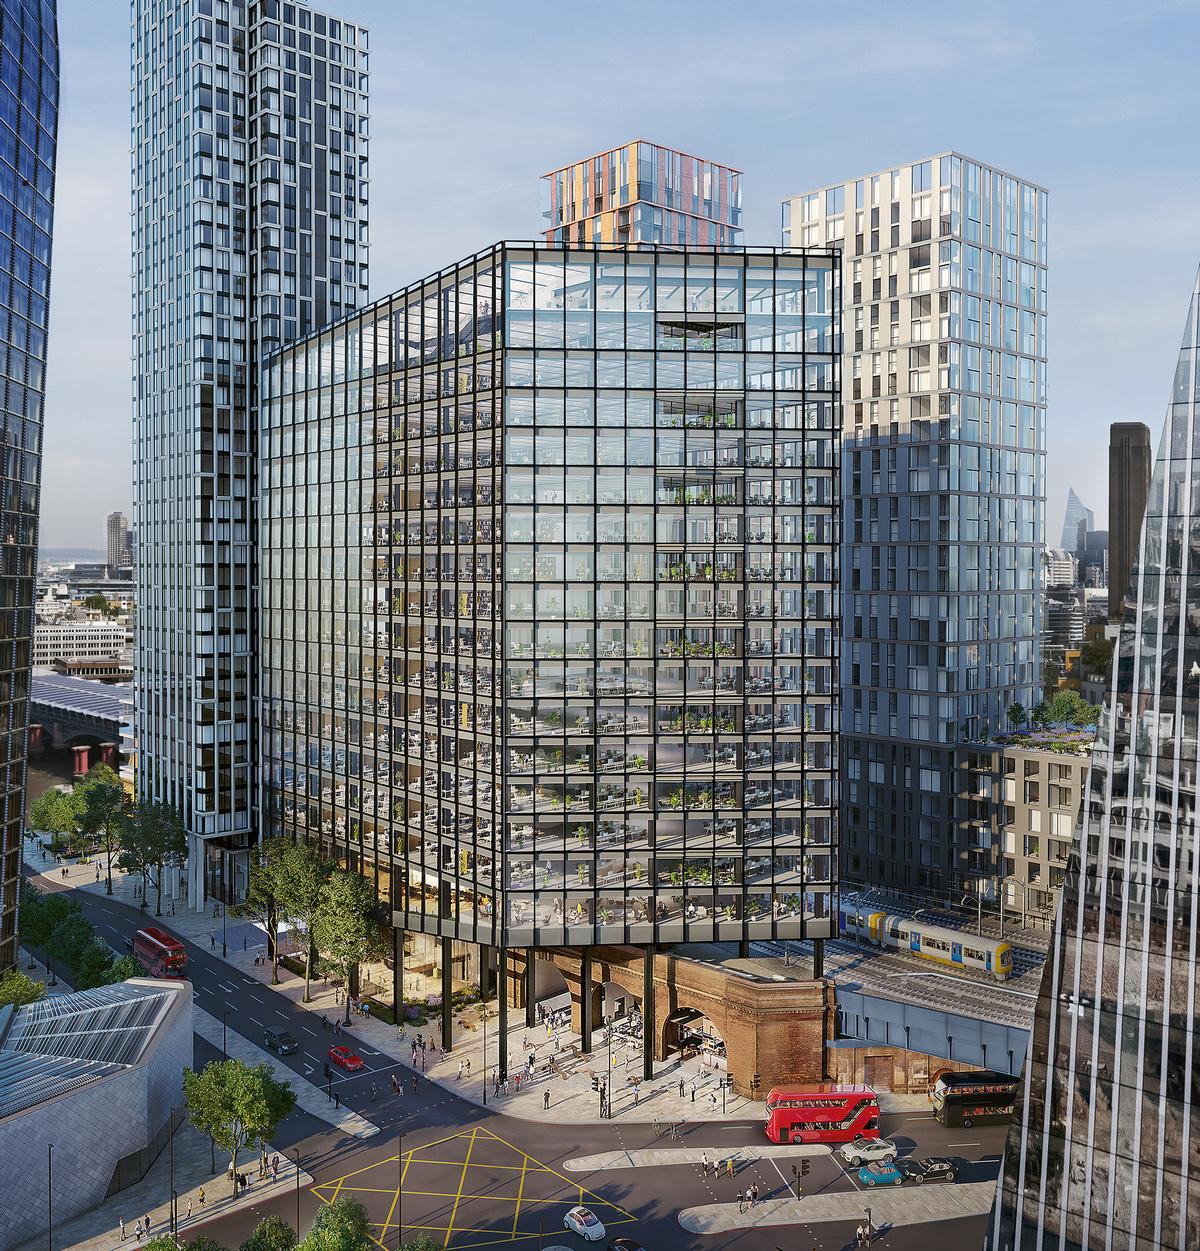 The new buidlings will house nearly 600 new apartments and a luxury hotel